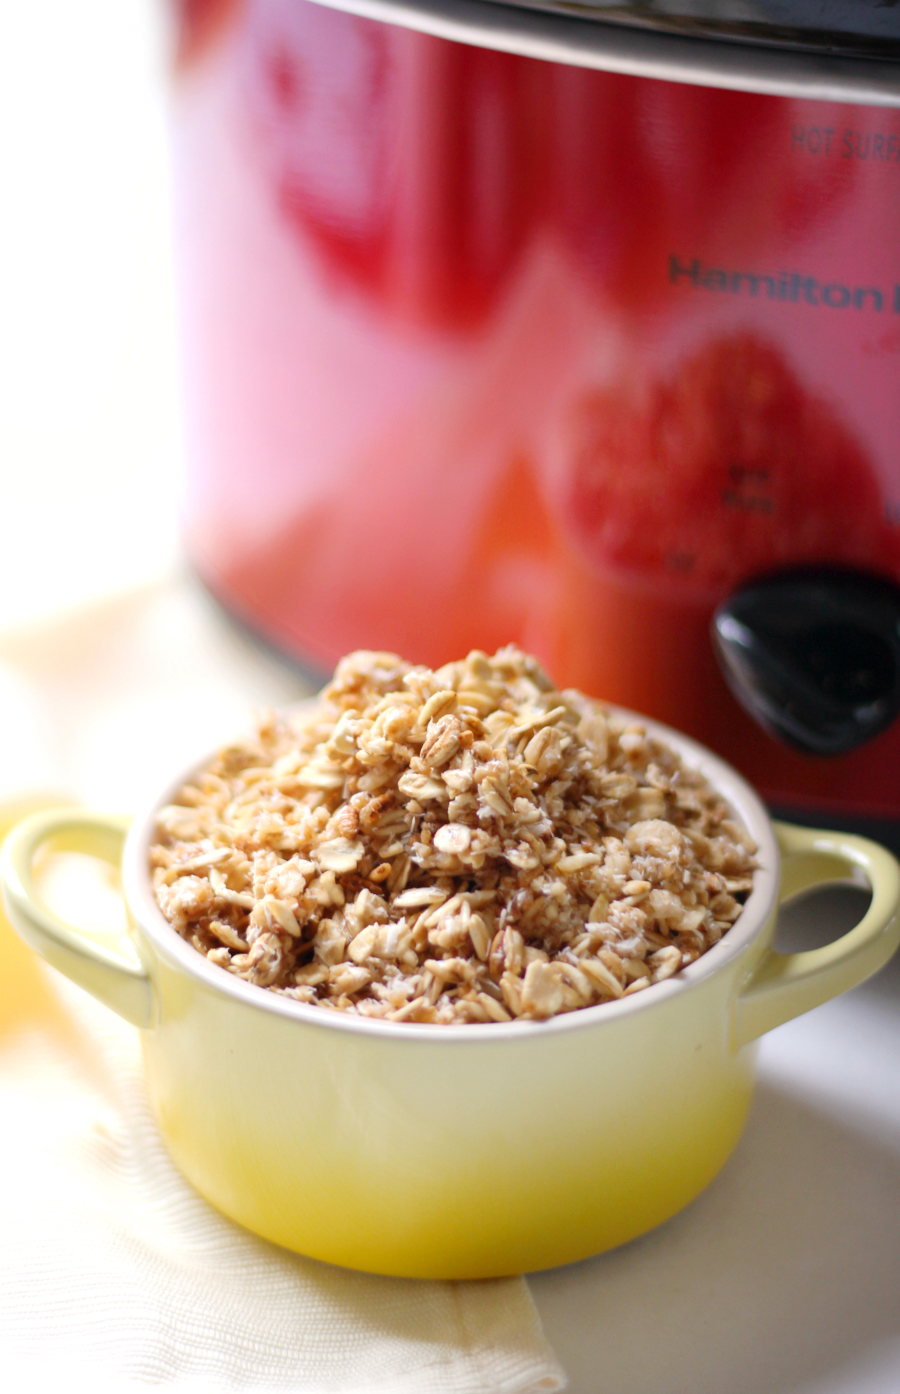 Slow Cooker Vanilla Coconut Granola (Gluten-Free, Vegan) | Strength and Sunshine @RebeccaGF666 The ultimate no-fuss granola recipe! Slow Cooker Vanilla Coconut Granola made right in the crock-pot, is gluten-free, vegan, and allergy-free! This simply healthy, sweet, and coconutty granola makes a great breakfast or snack with zero work involved!